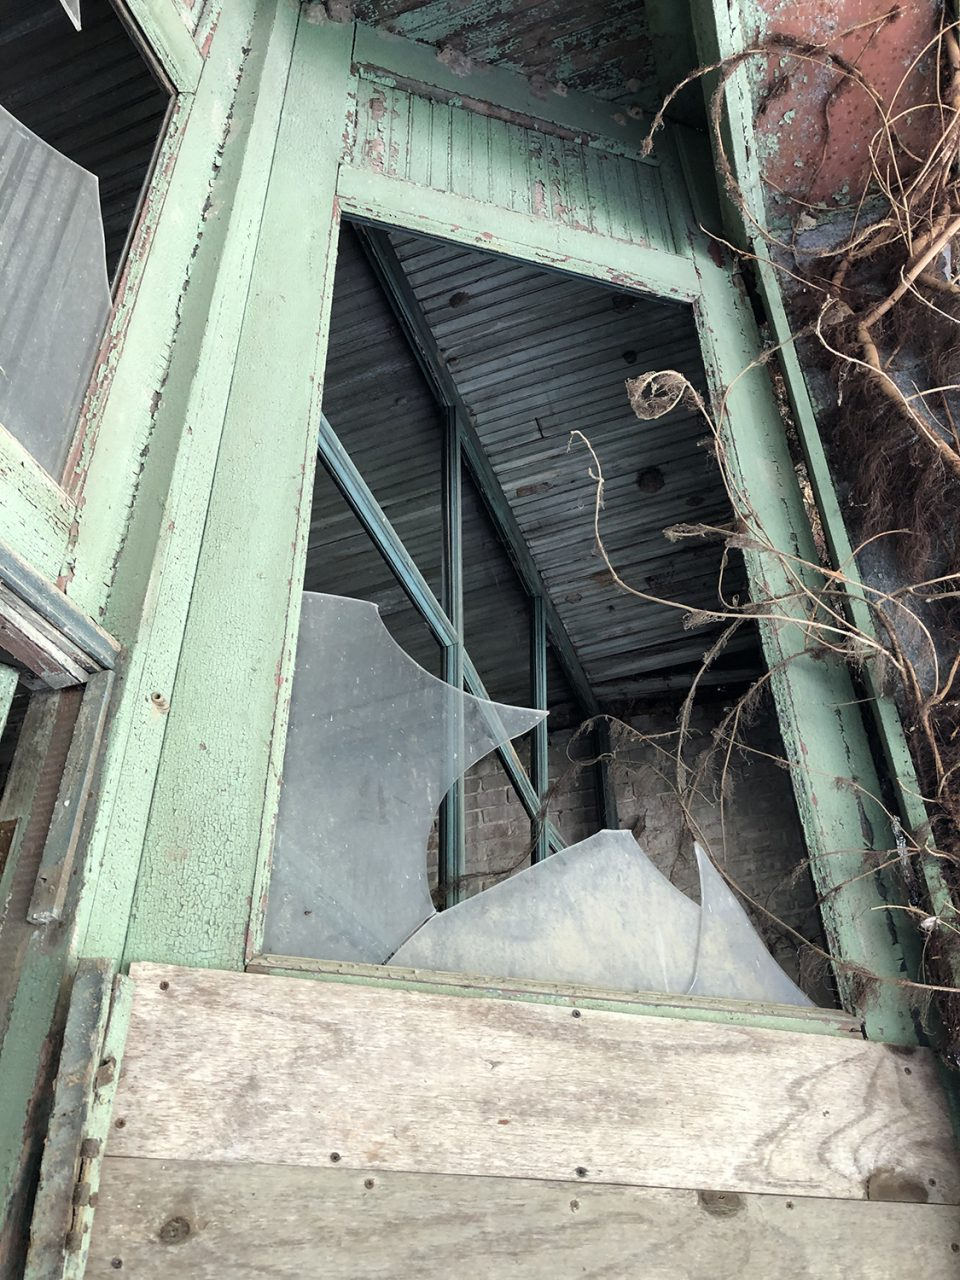 Looking up at the top of the storefront windows, now broken and covered in poison ivy. The Tibbs store occupied a vast space. Photograph copyright 2021 by Keith Dotson. All rights reserved.